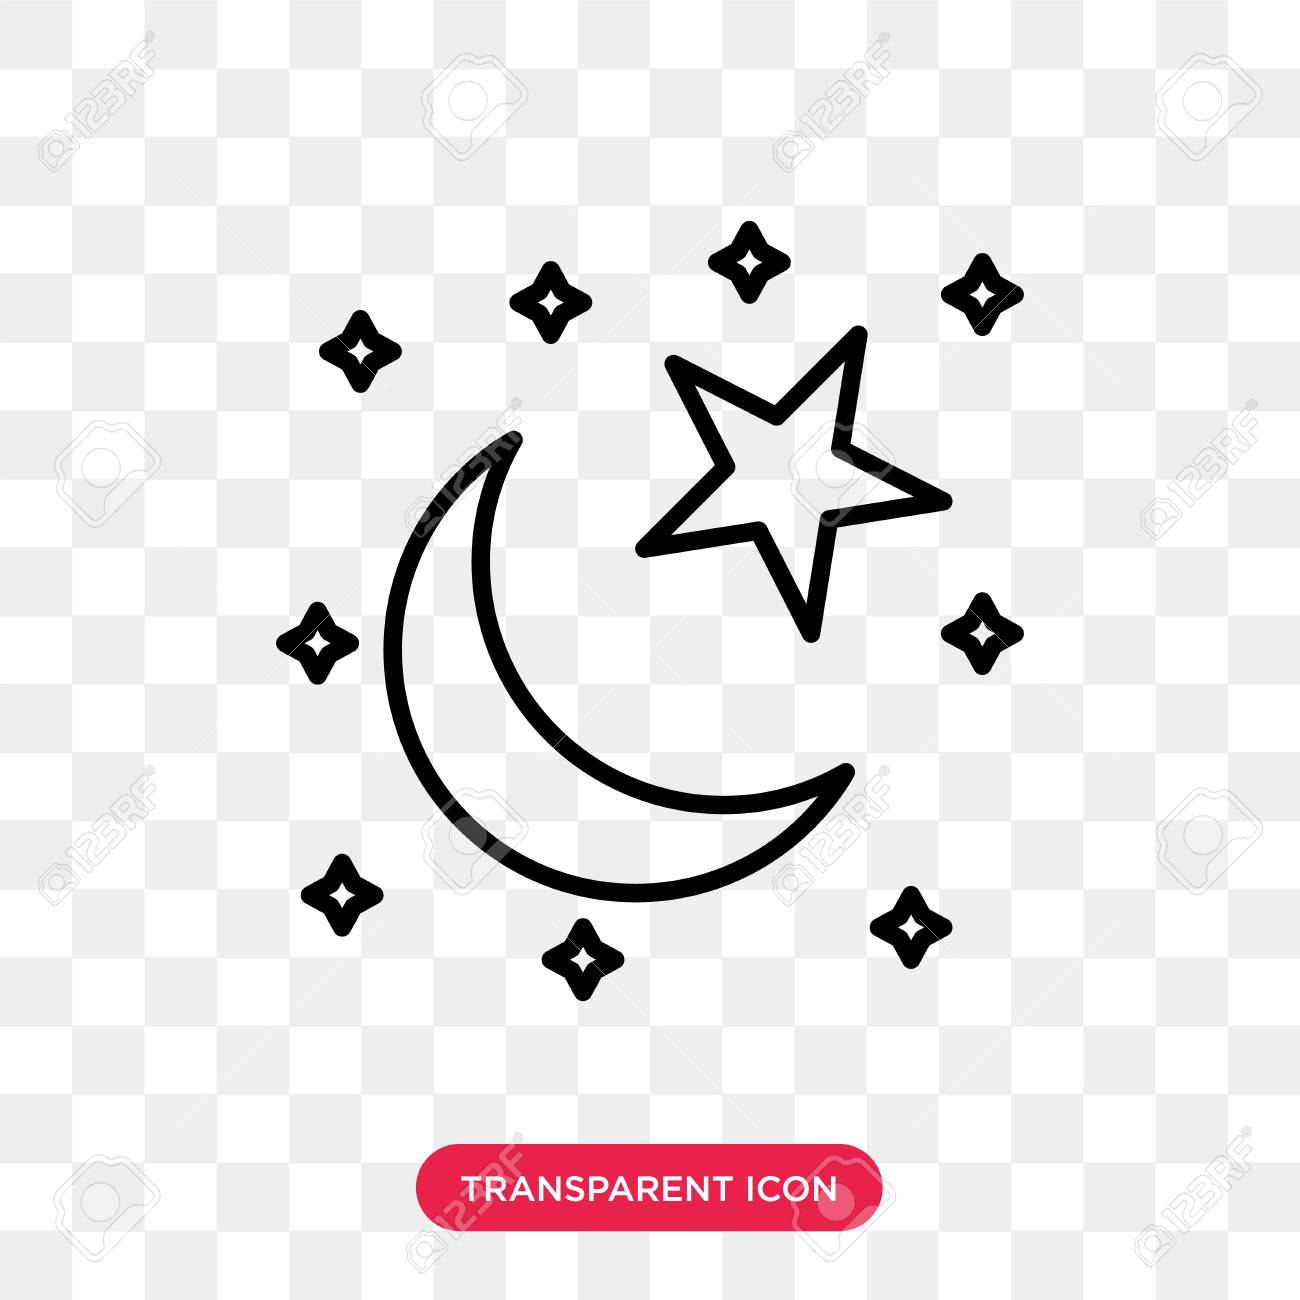 star and crescent moon vector icon isolated on transparent background royalty free cliparts vectors and stock illustration image 107374444 star and crescent moon vector icon isolated on transparent background